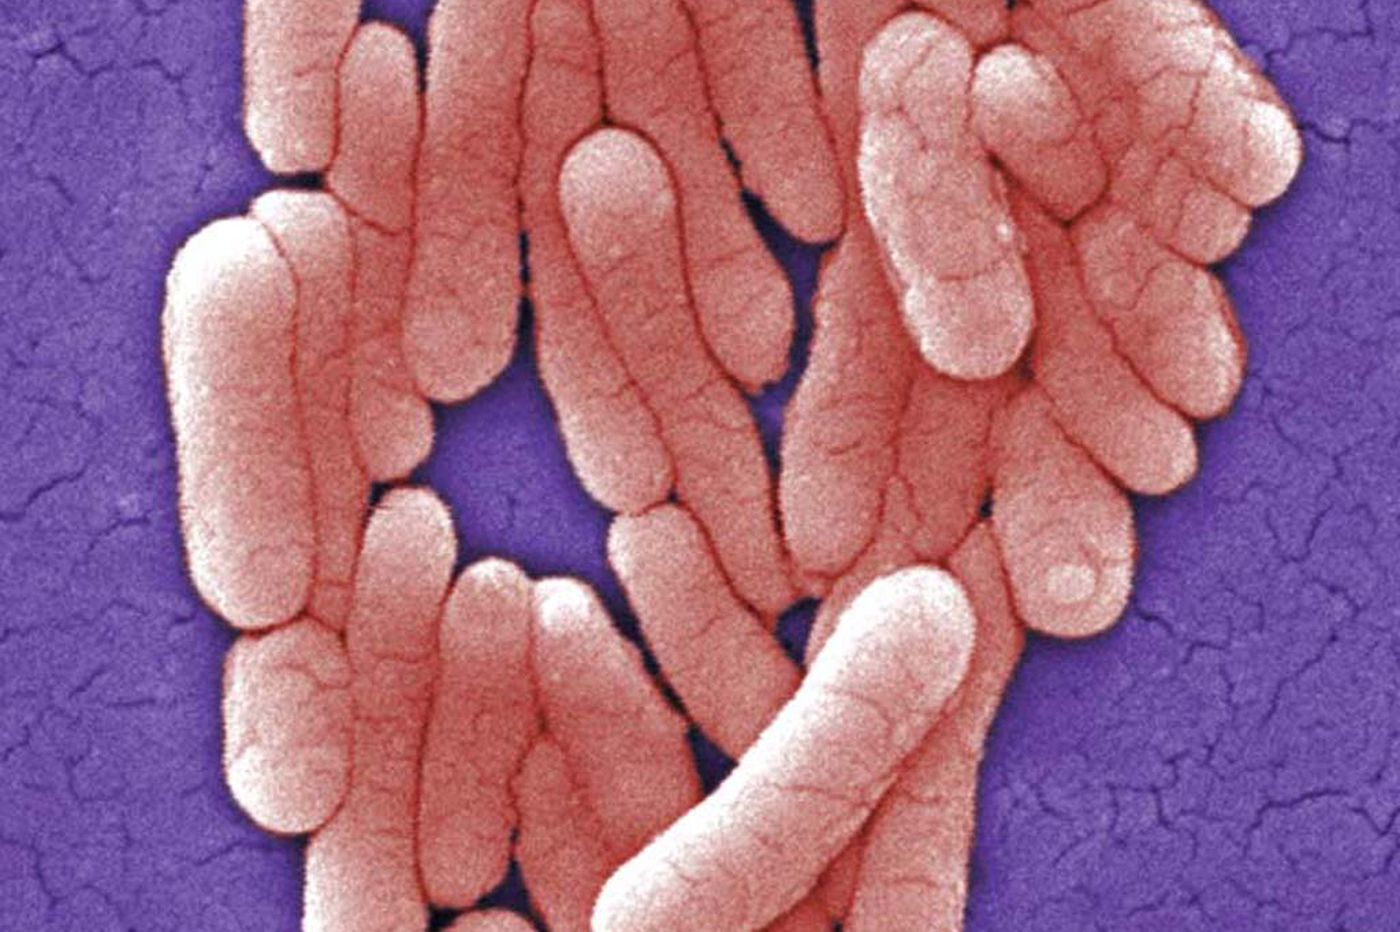 Salmonella outbreak sickens 33 at Pa. health-care facilities; many ate pre-cut fruit